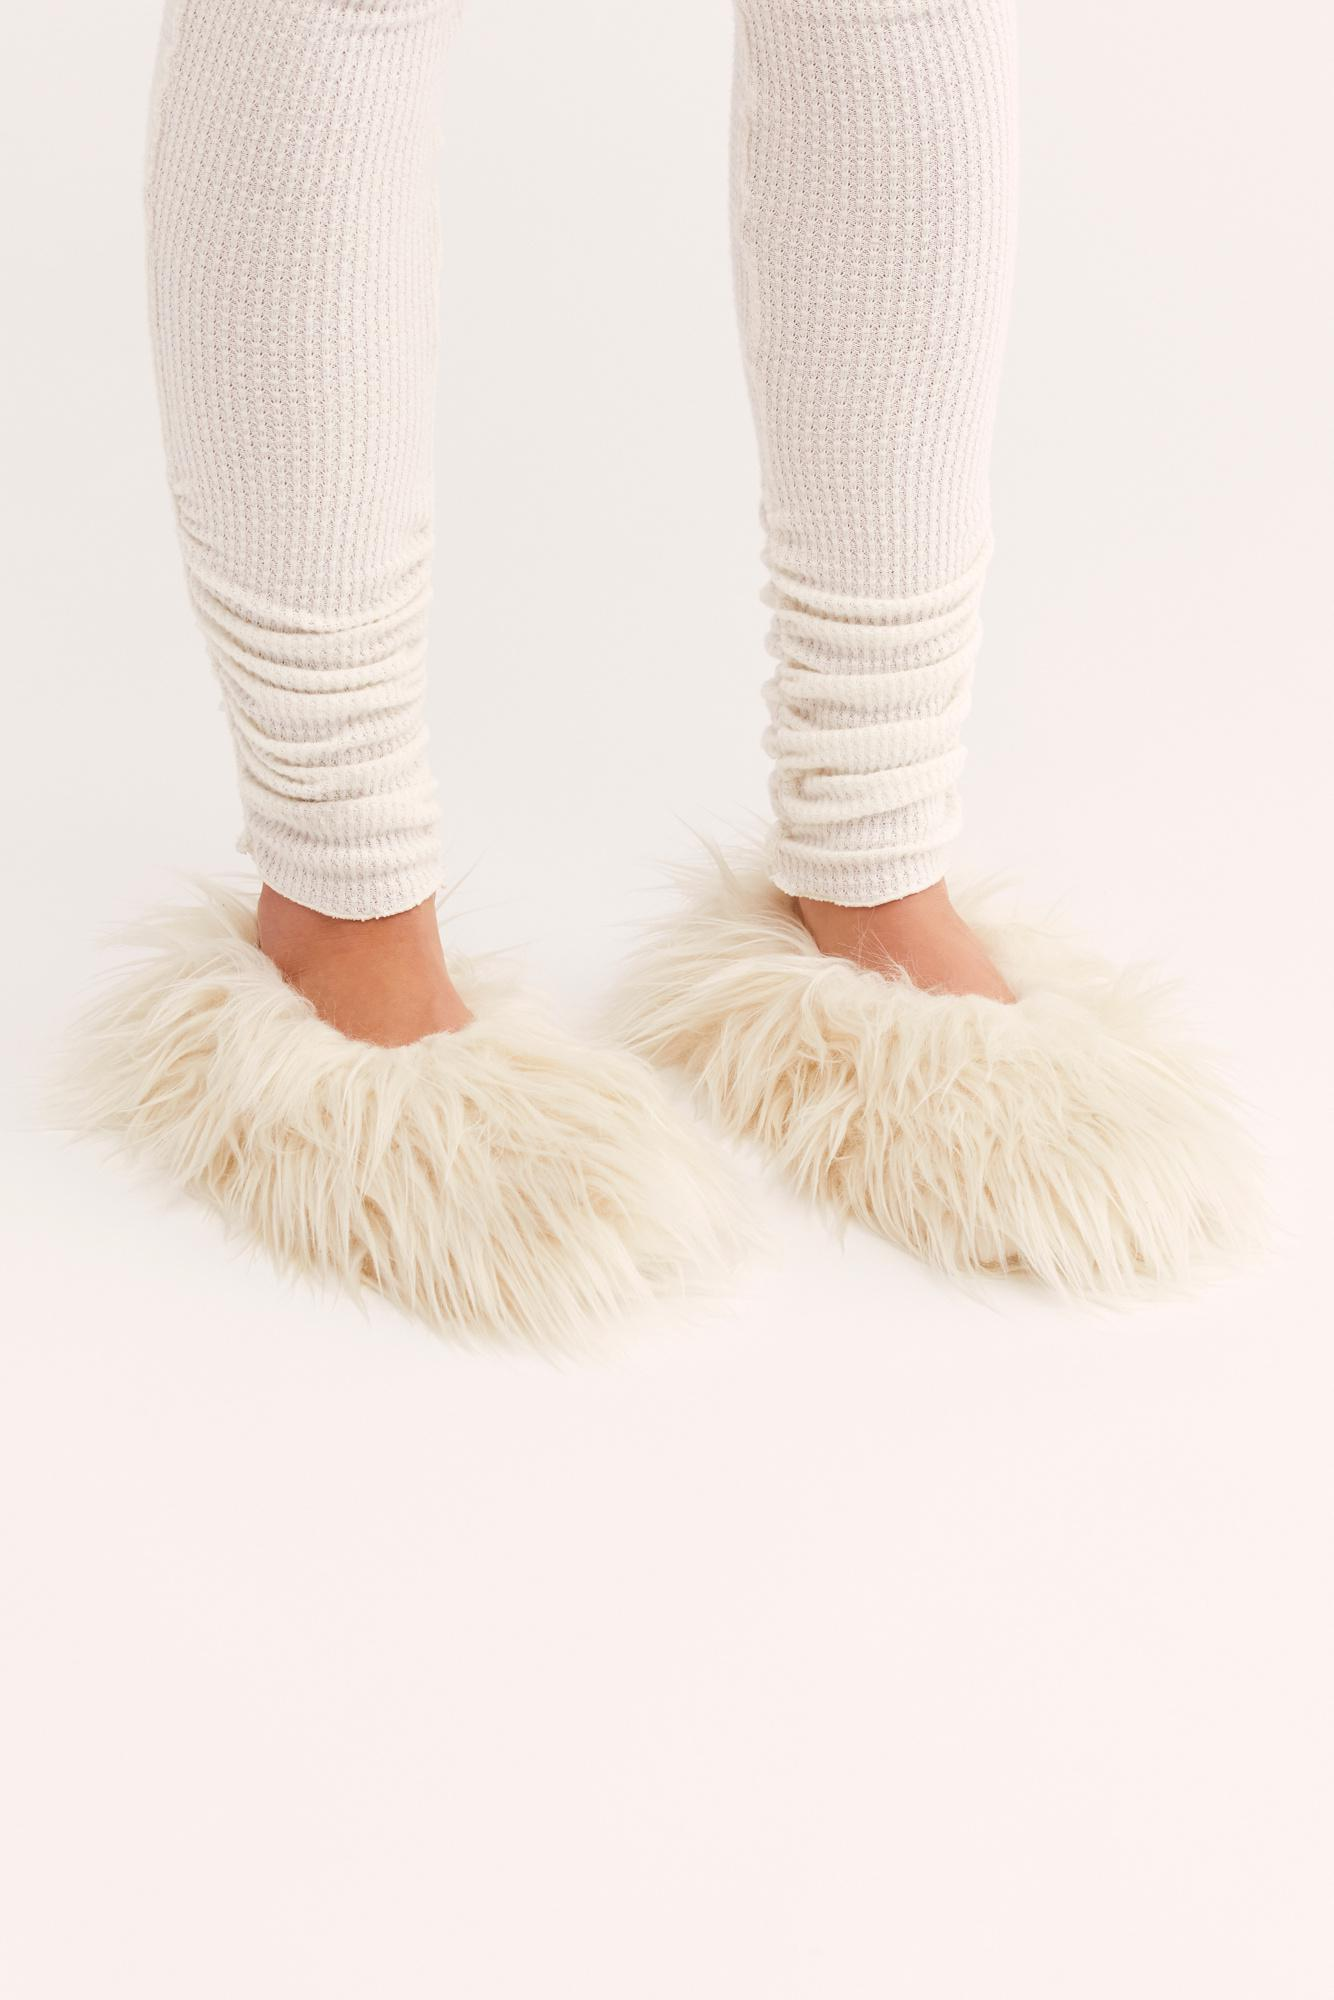 799bf6e7ca9 Free People Faux Fur Slipper By Pantuss - Chemise in Natural - Lyst